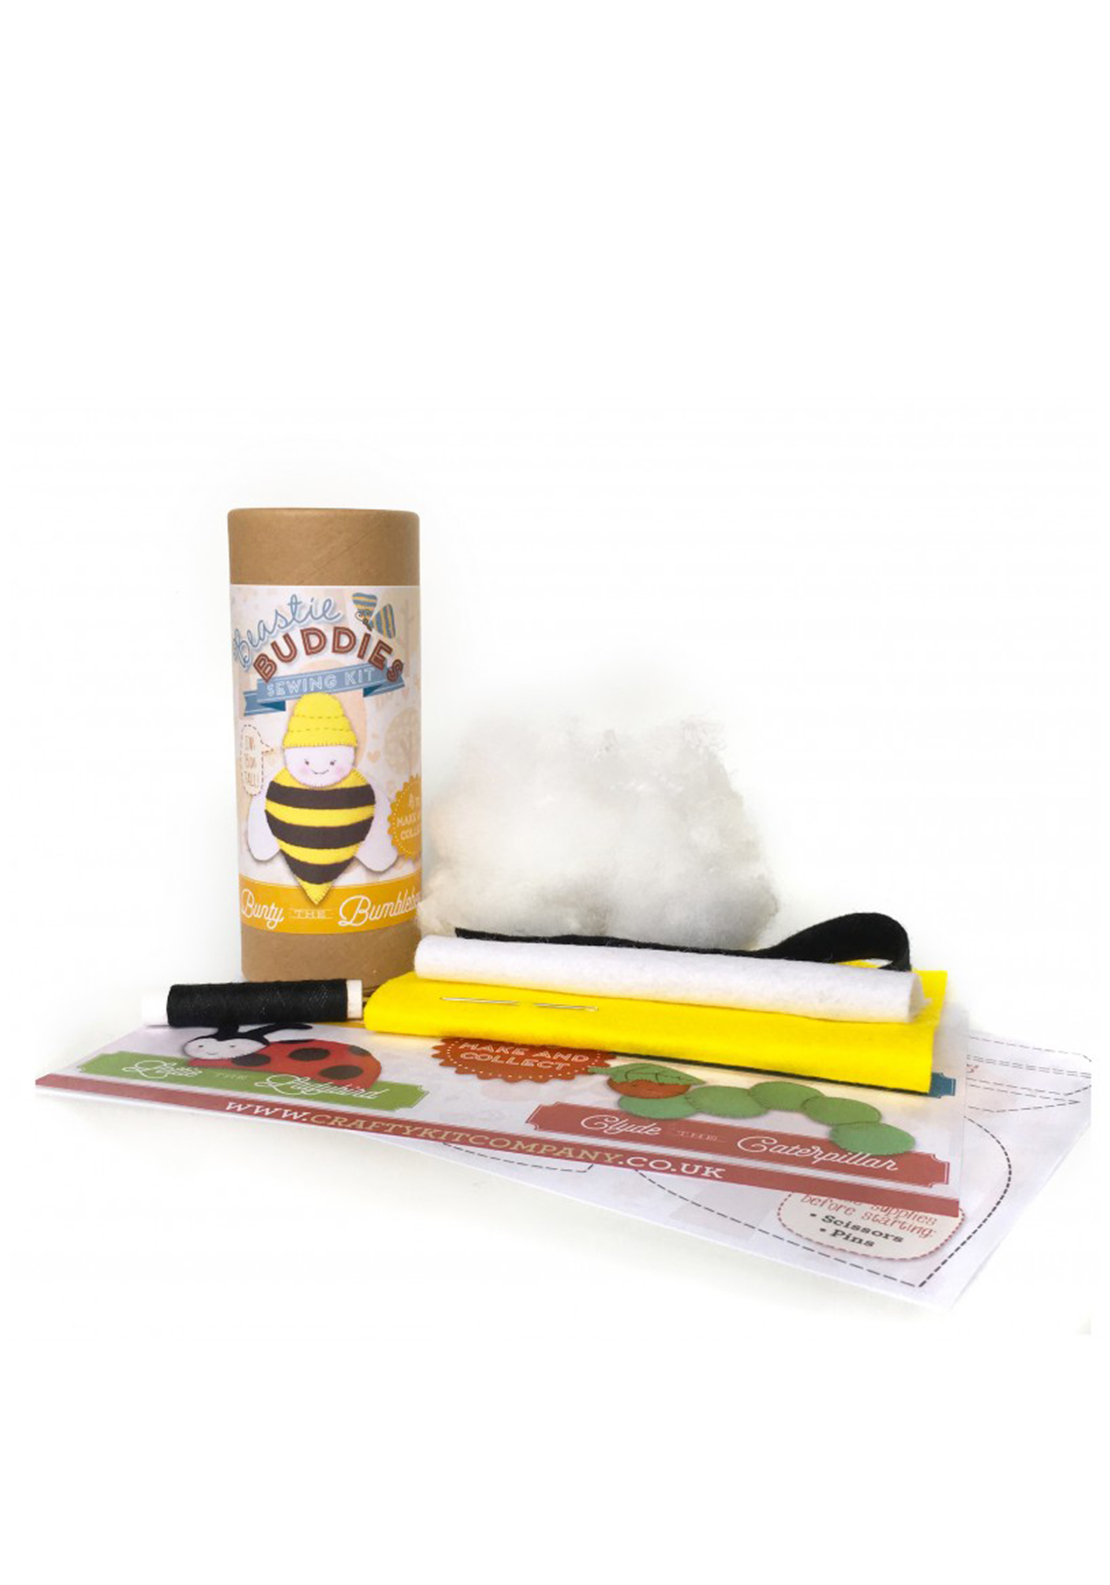 The Crafty Kit Co. Bunty the Bumblebee Sewing Kit